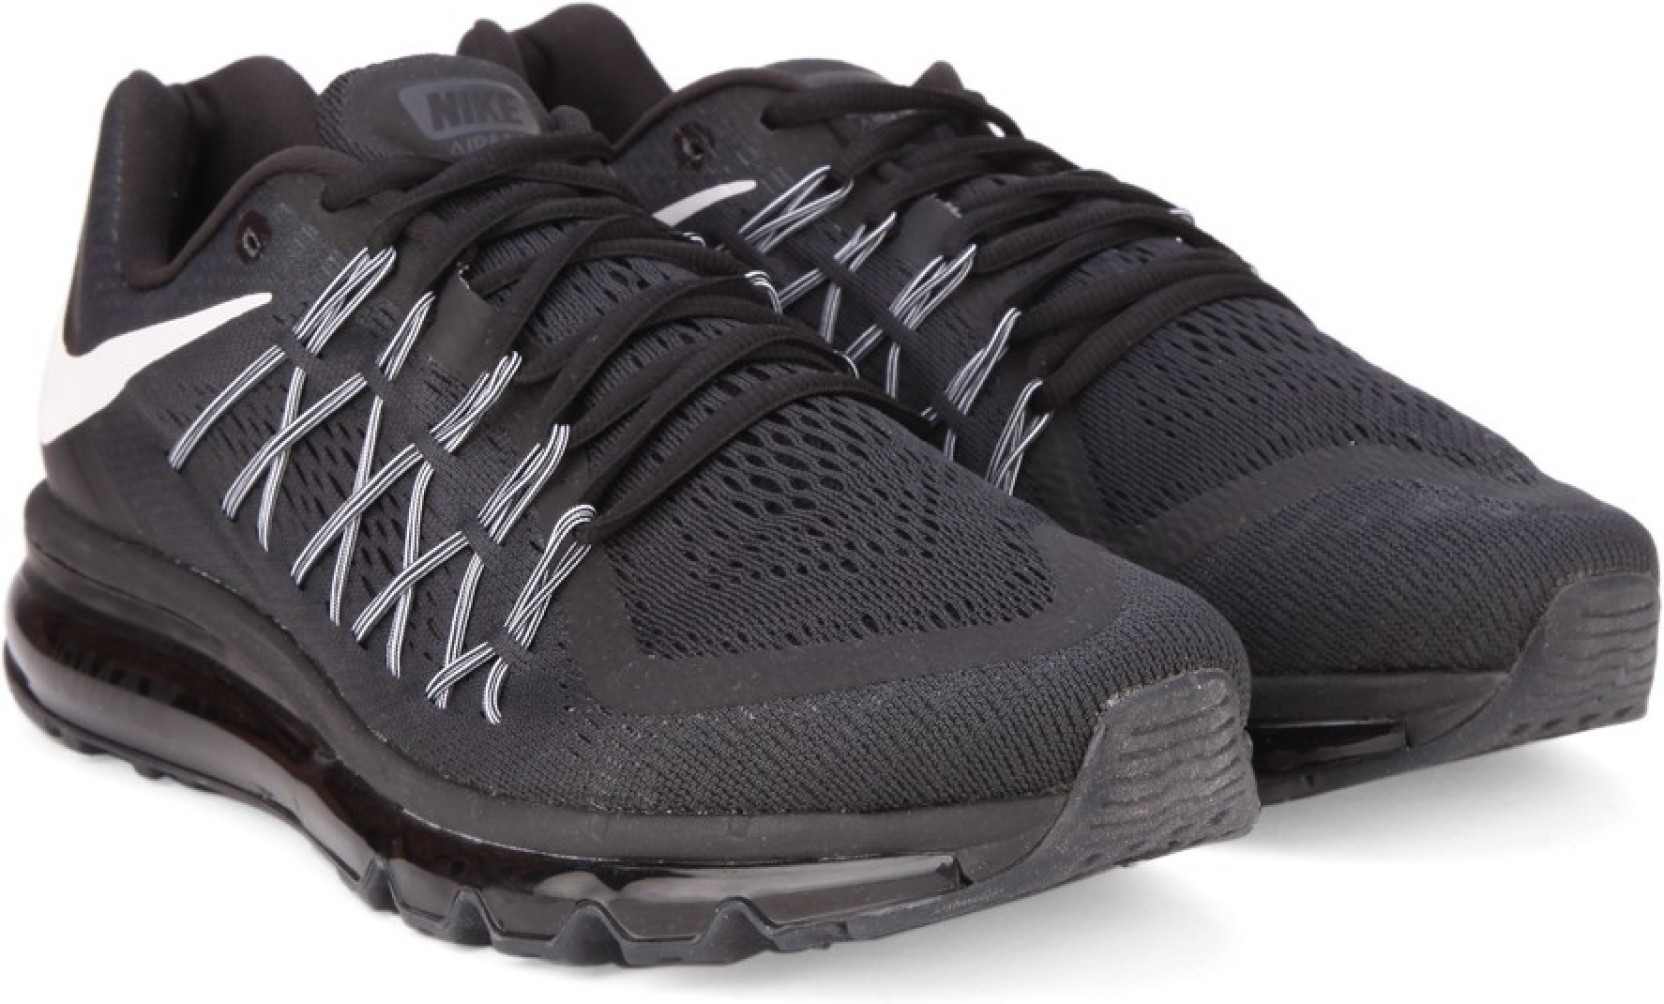 new style 64f05 cc8d8 Nike AIR MAX 2015 Running Shoes For Men (Black, White)